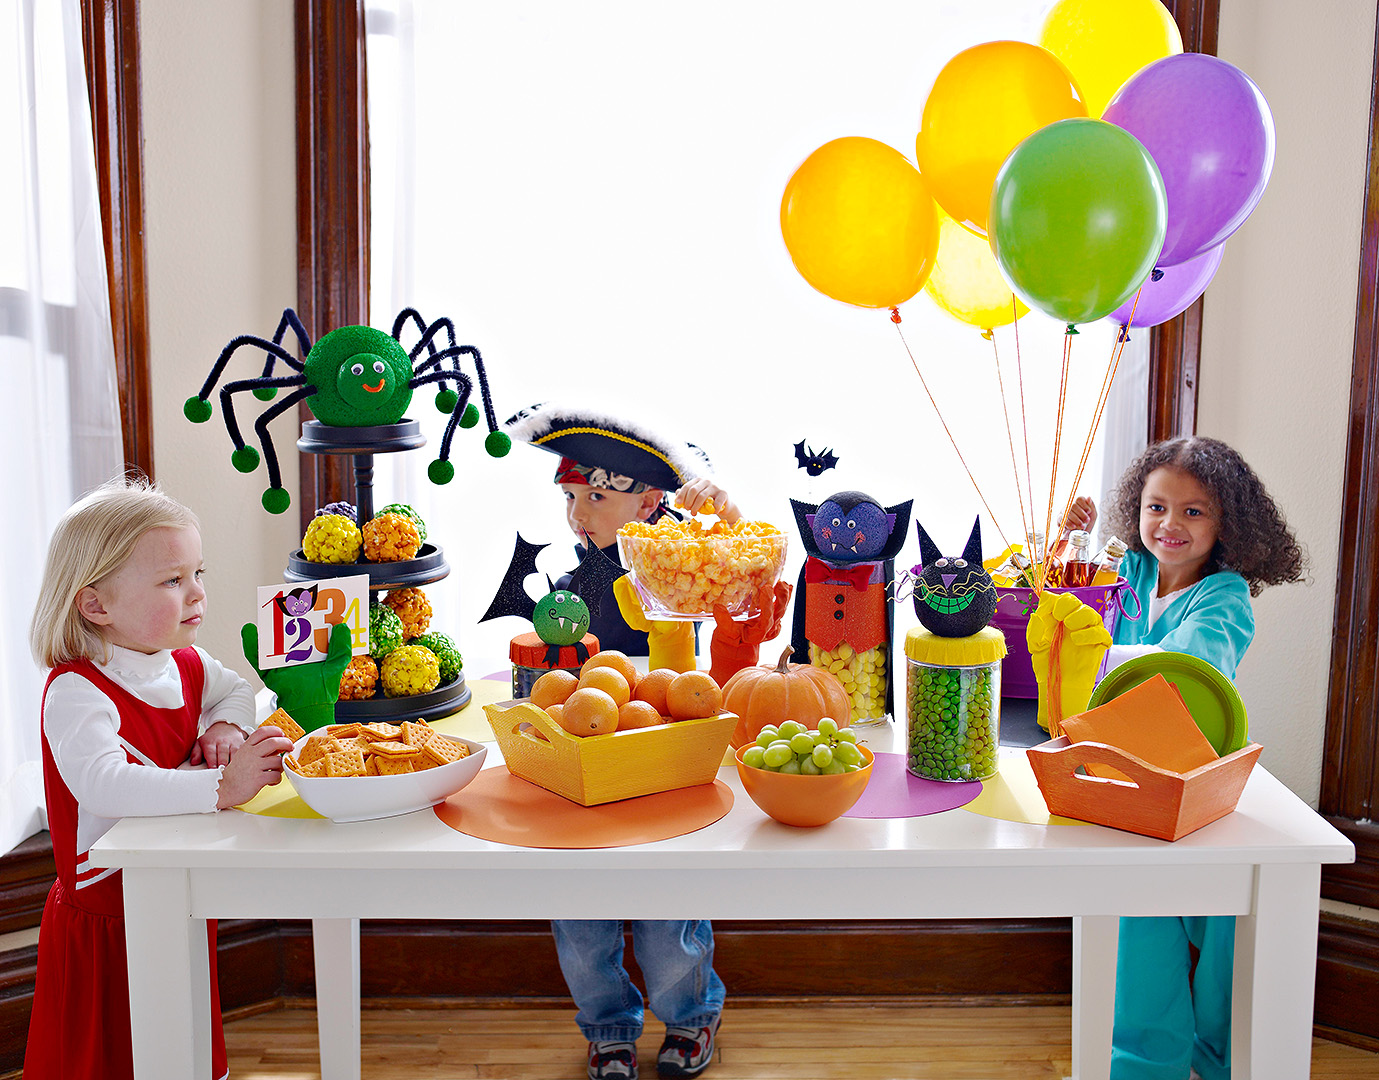 kids at table with food Count Dracula party